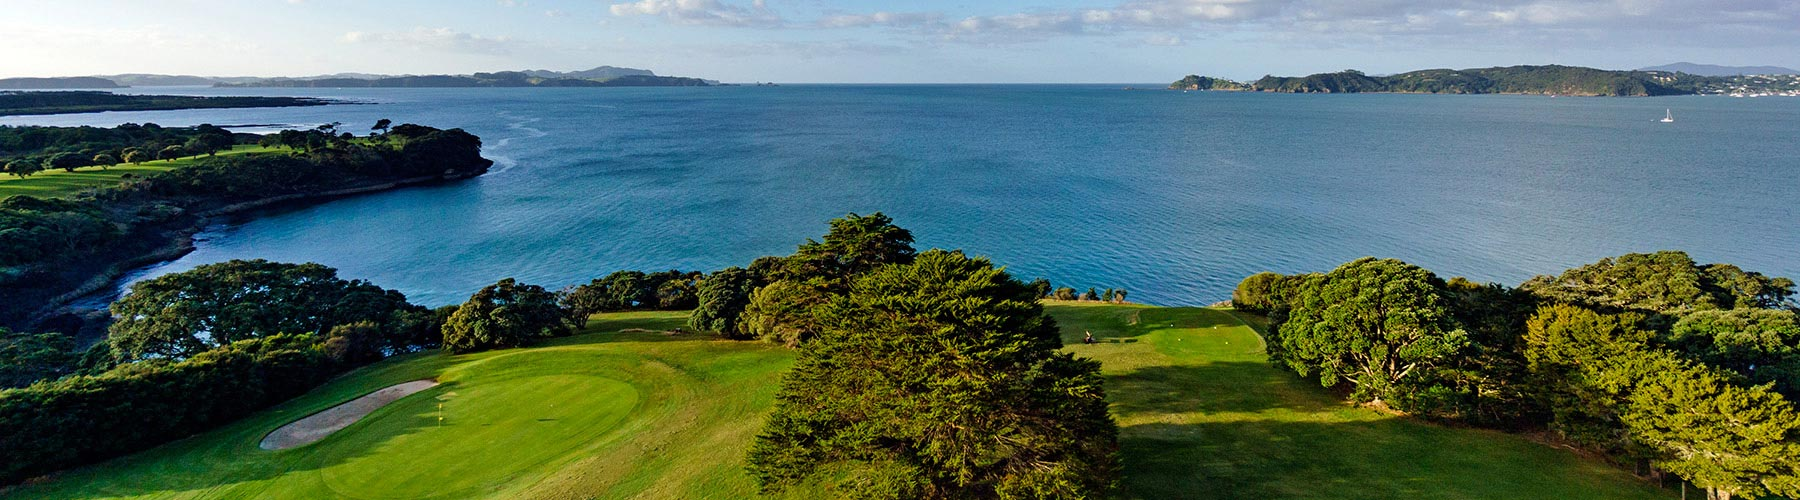 Golf-Courses Bay of Islands